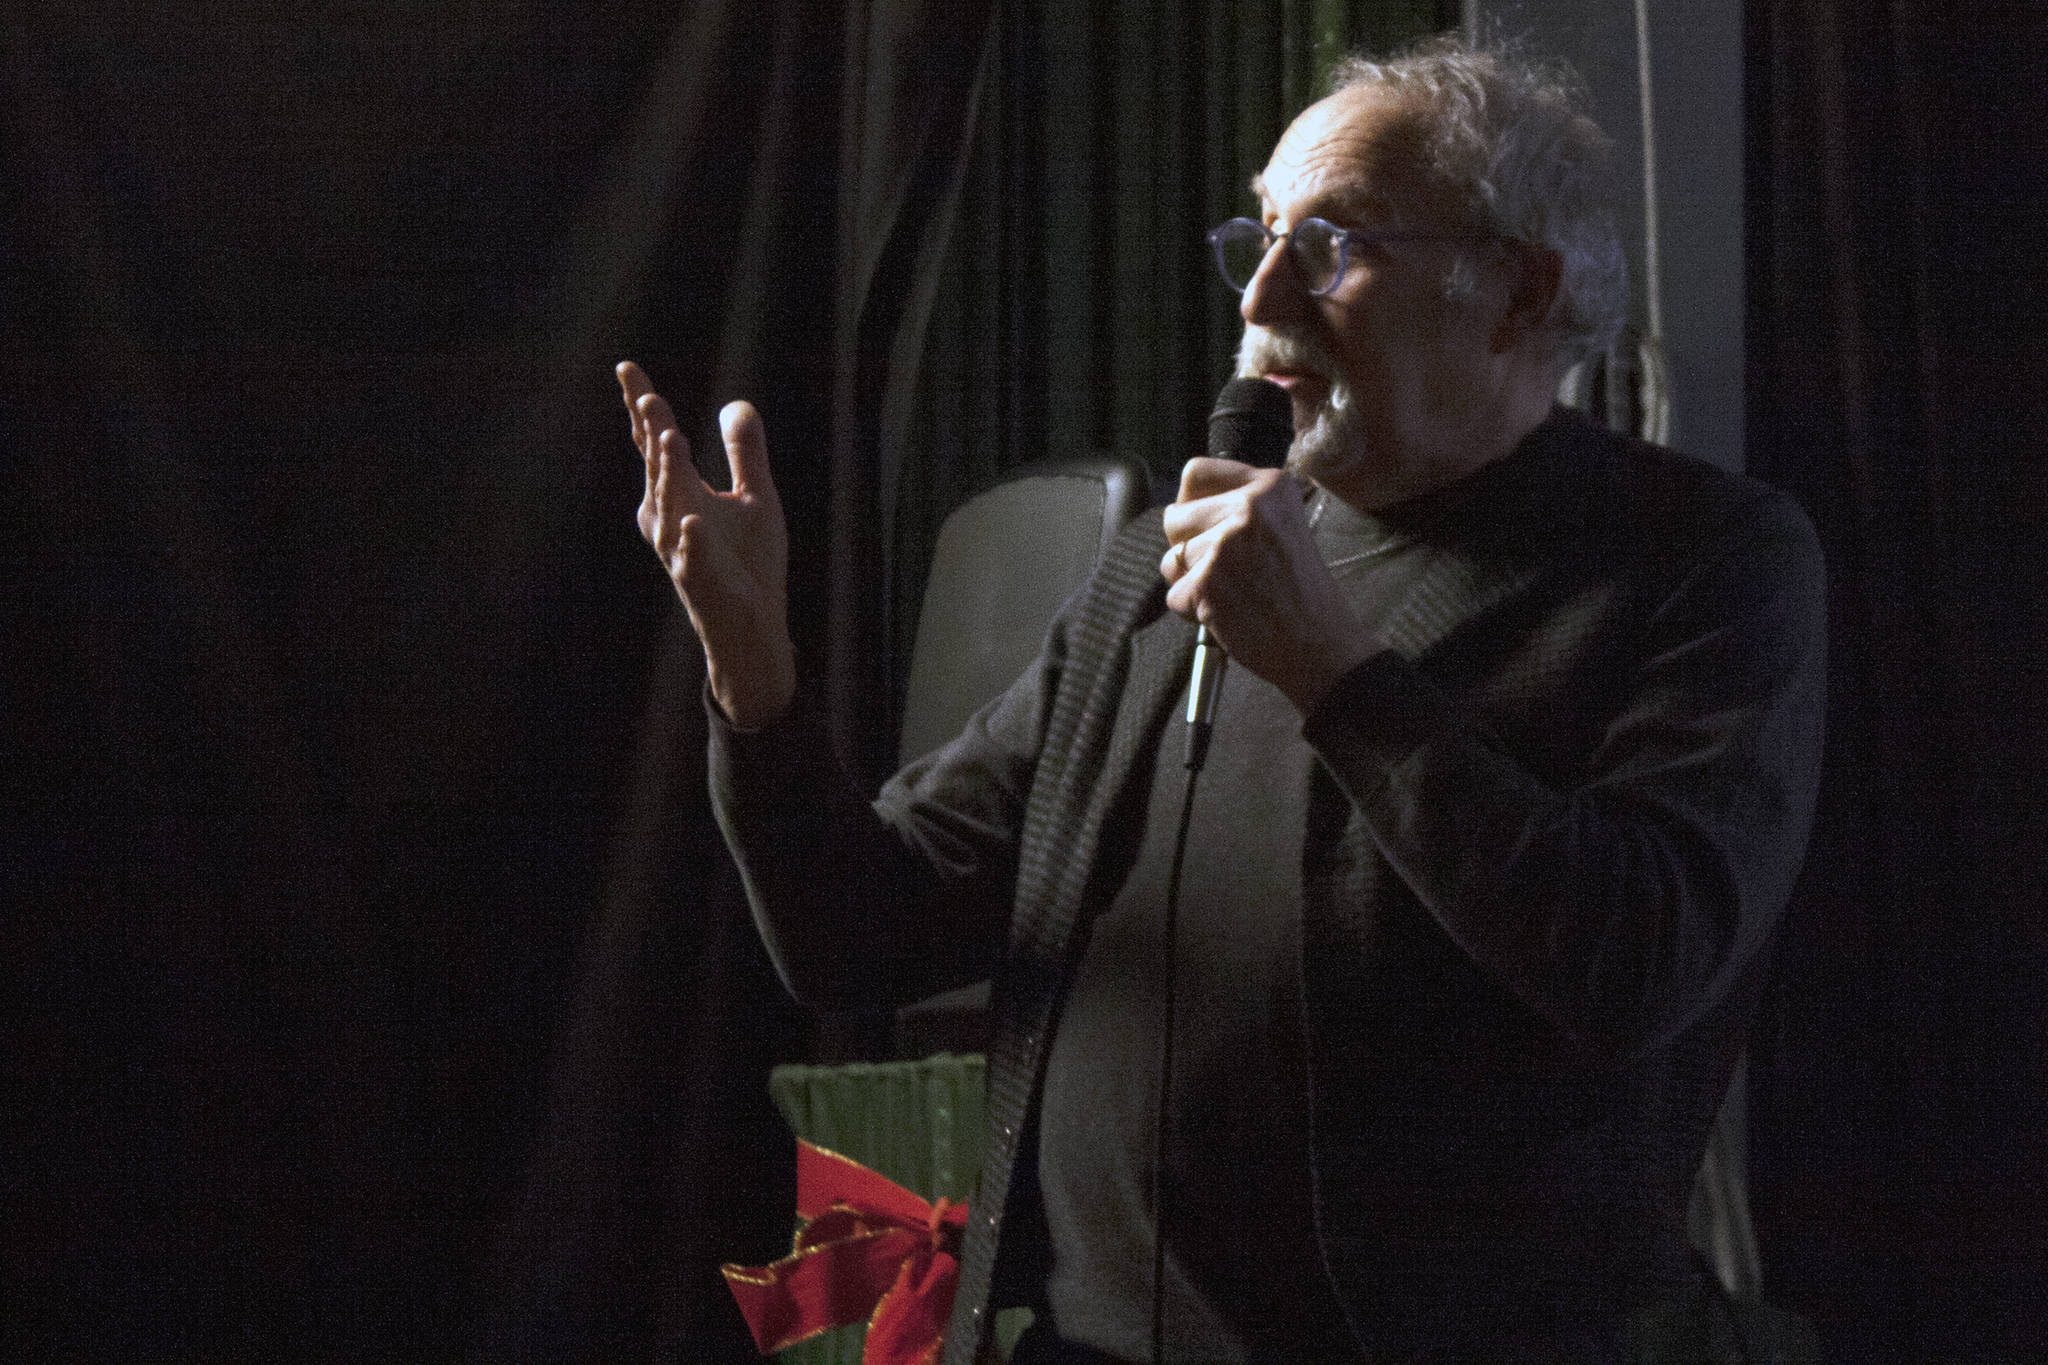 David George Gordon, a public speaker, naturalist and author known as the Bug Chef, speaks at the Gold Town Theater during a Science On Screen event Saturday, Jan. 18, 2020. (Ben Hohenstatt | Juneau Empire)